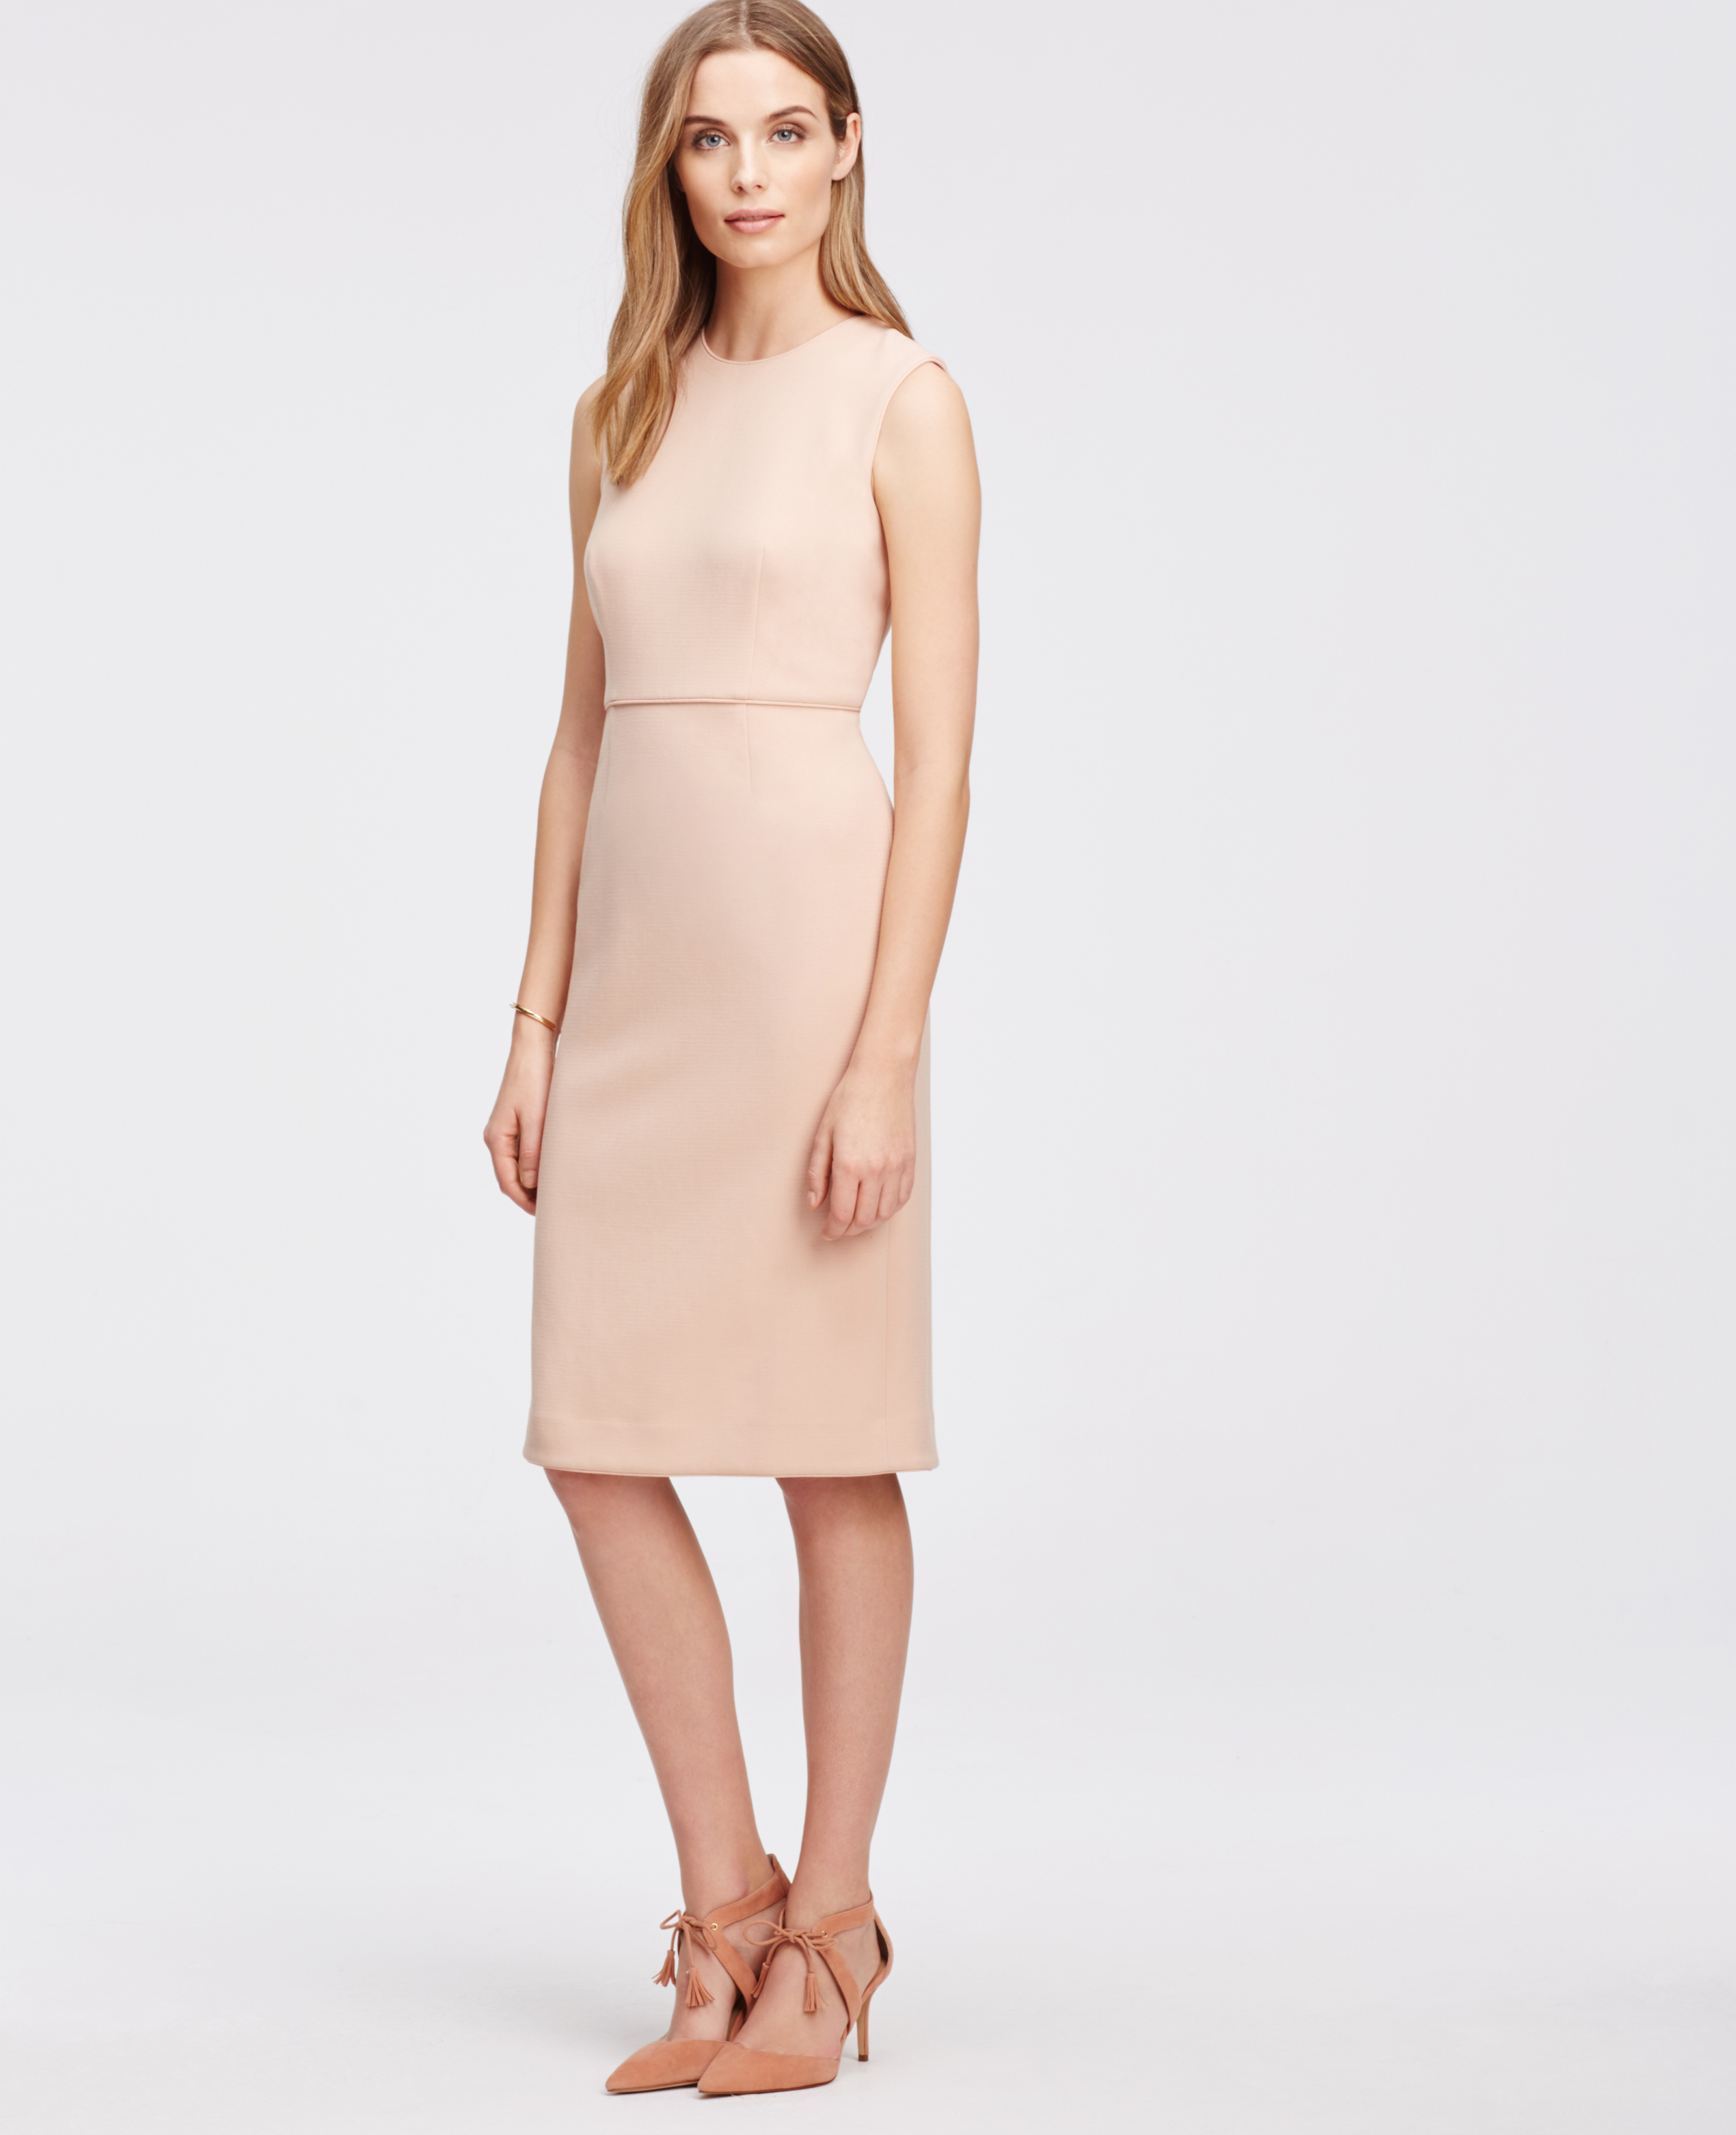 Lyst - Ann Taylor Sleeveless Piped Sheath Dress in Pink